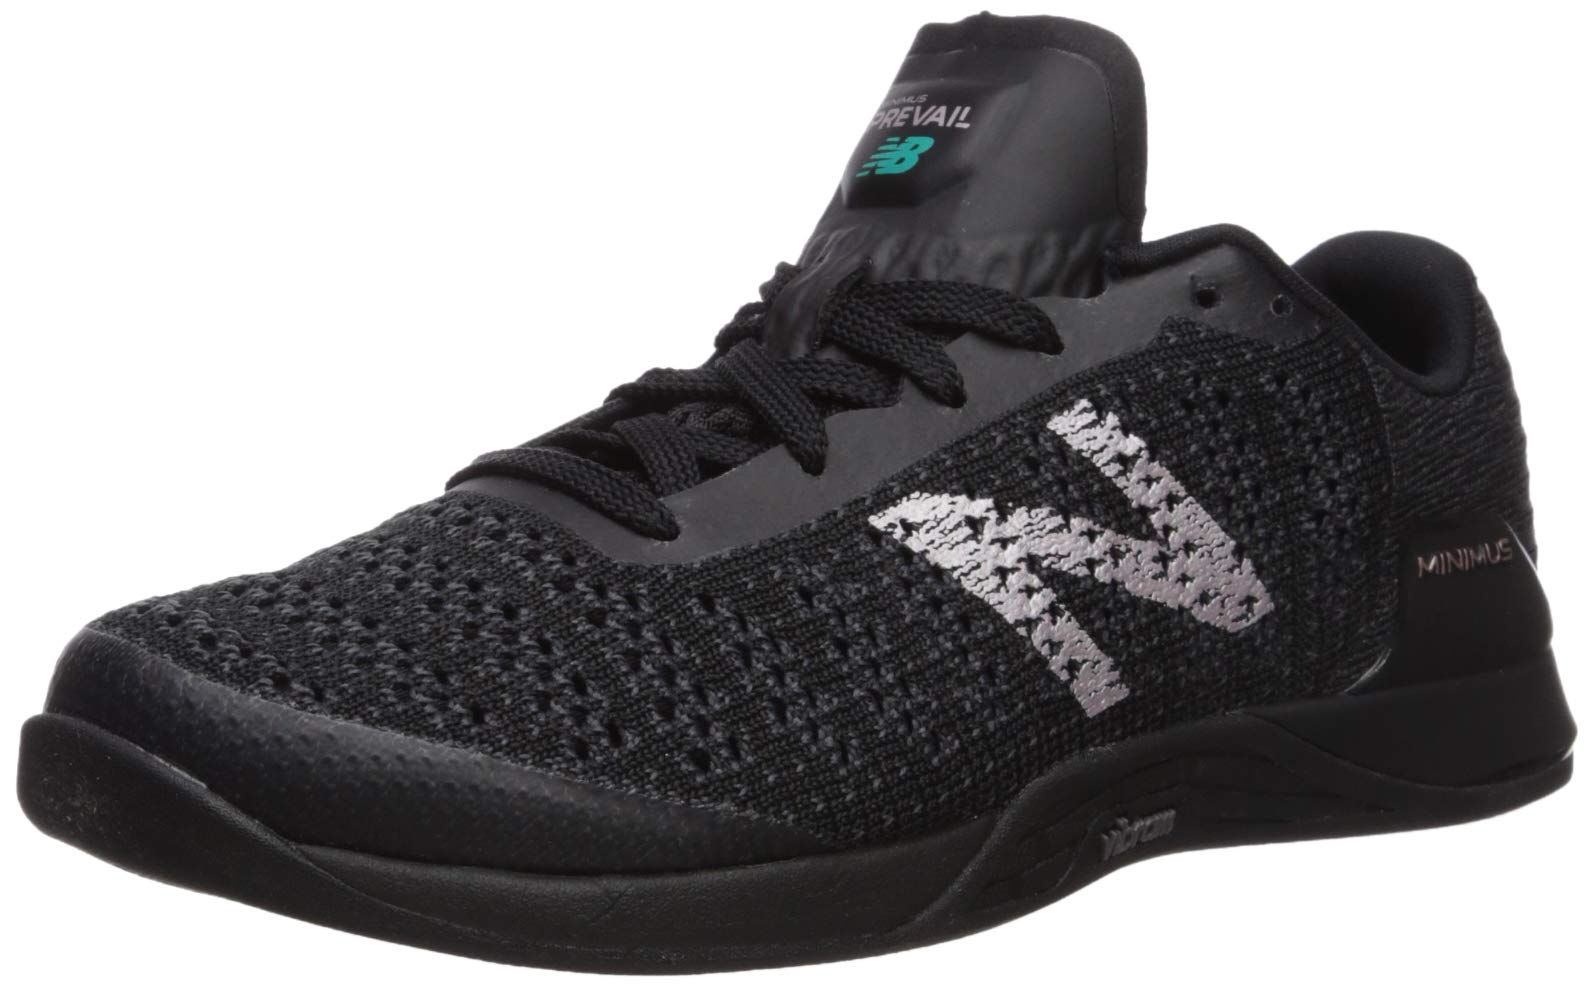 New Balance Women's Prevail V1 Minimus Track and Field Shoe, Black/Magnet, 5 M US by New Balance